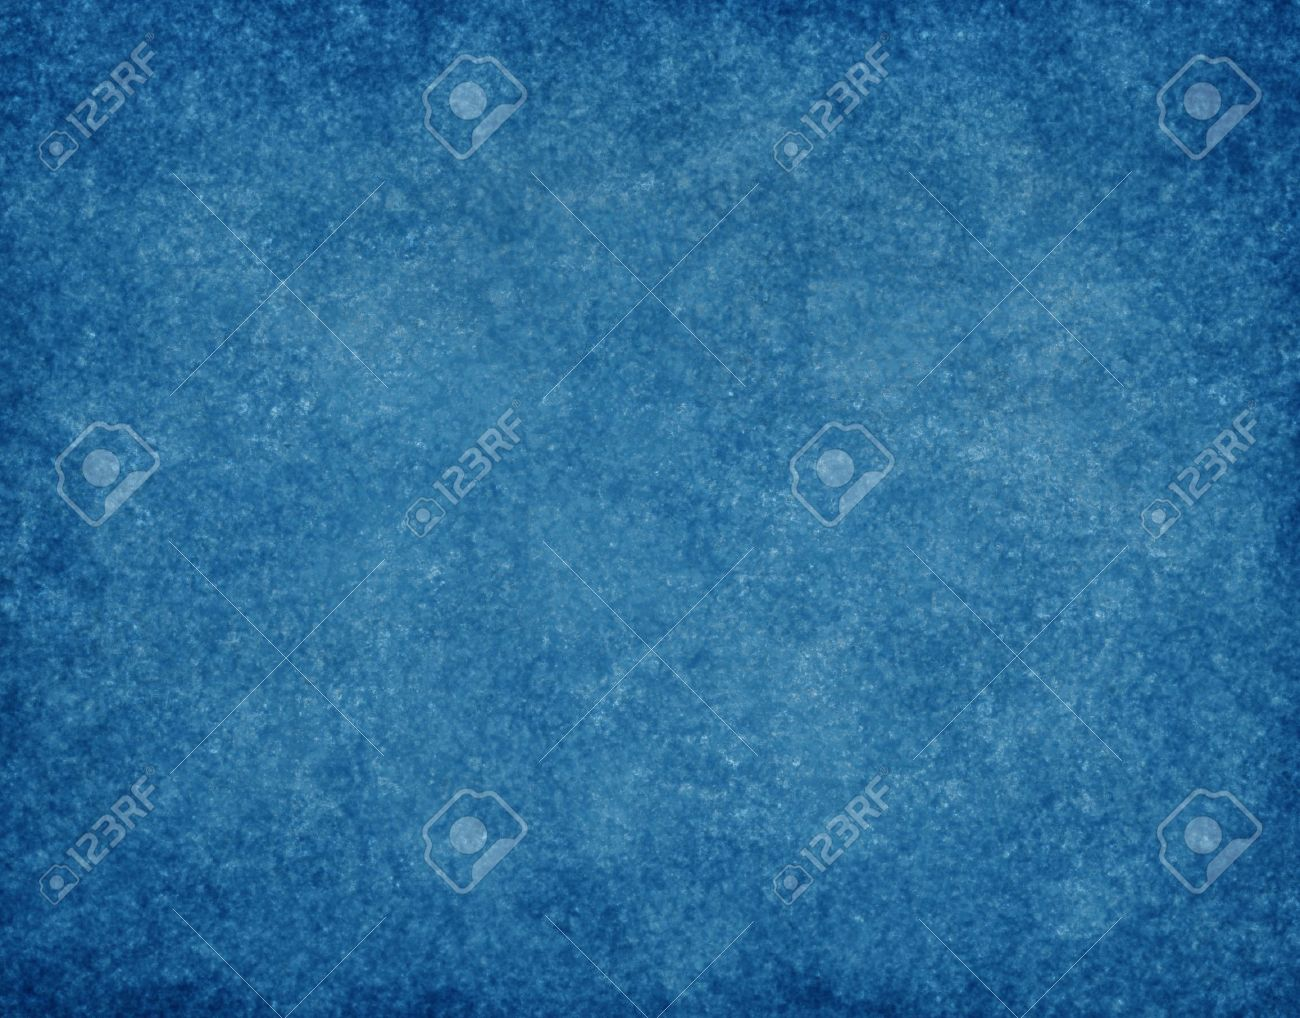 abstract blue background with vintage grunge background texture design with elegant sponge paint on wall illustration for scrapbook paper, or web background templates, grungy old background paint Stock Illustration - 15308321